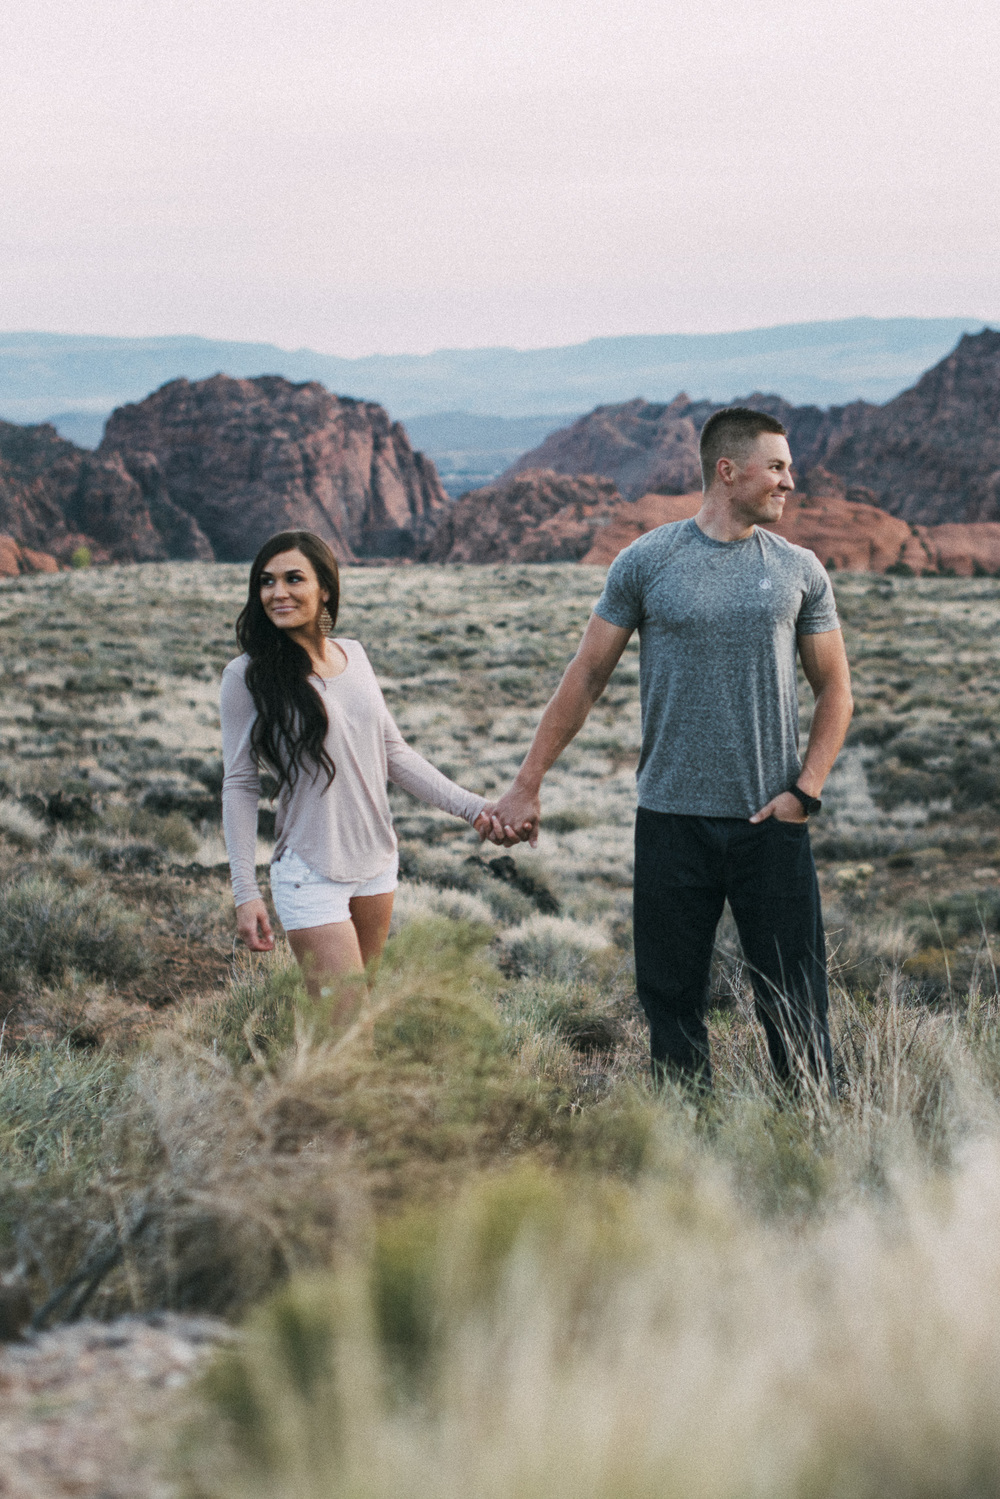 050416KELSEY & RUSTIN ENGAGEMENTS - ST. GEORGE LAS VEGAS PHOTOGRAPHER - DEBI RAE PHOTOGRAPHY-98.jpg